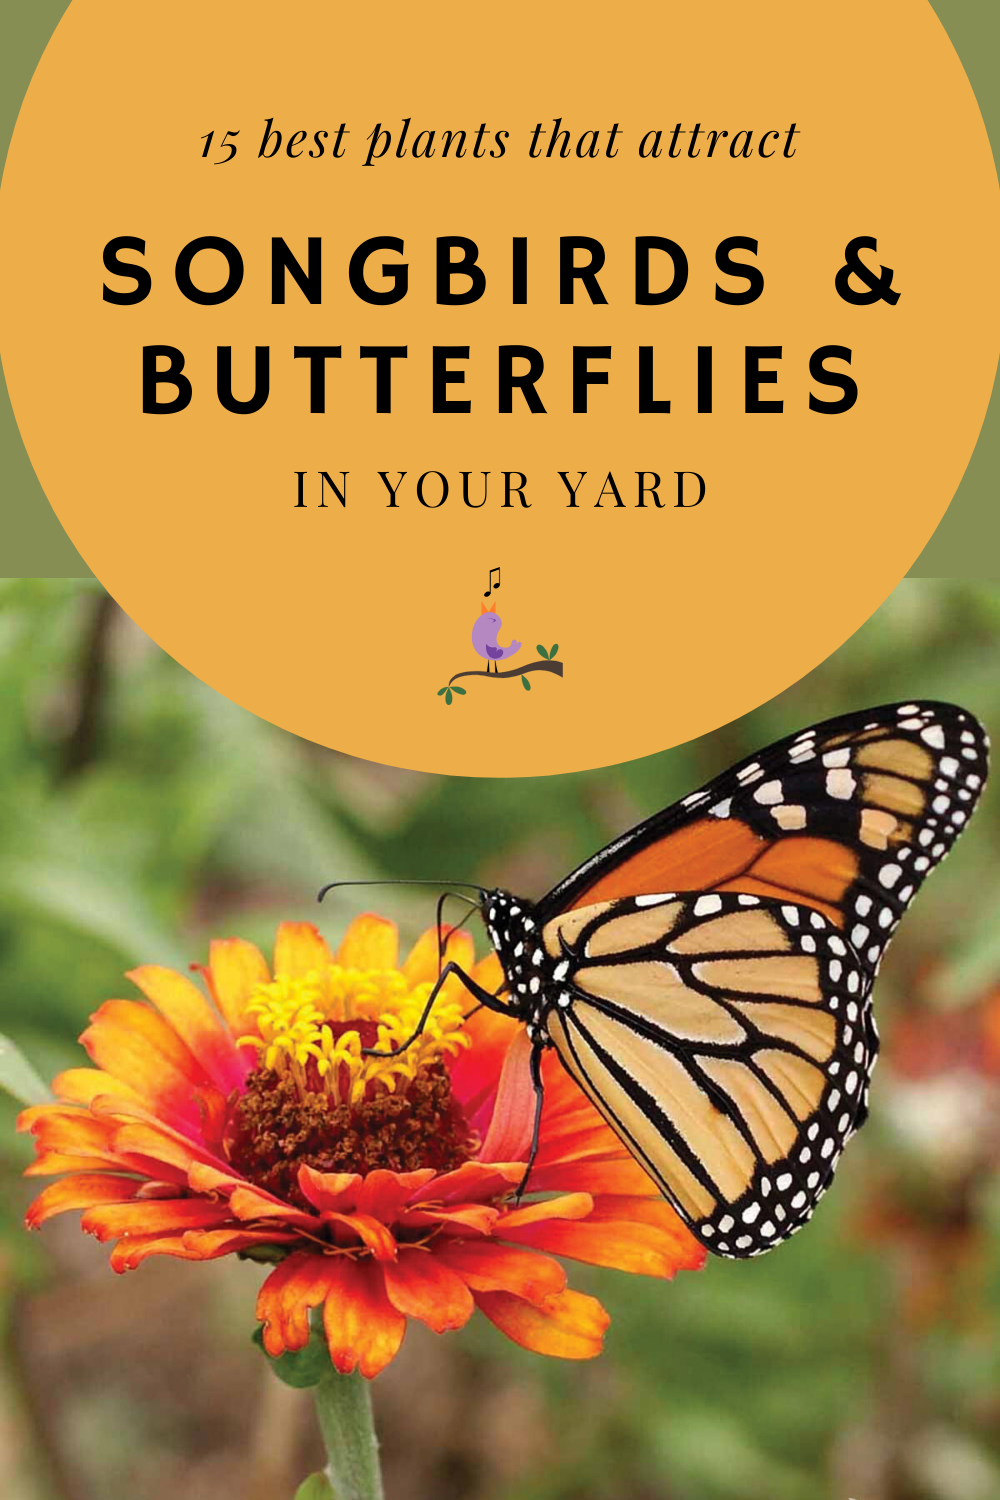 15 Best Plants That Attract Songbirds And Butterflies In ...